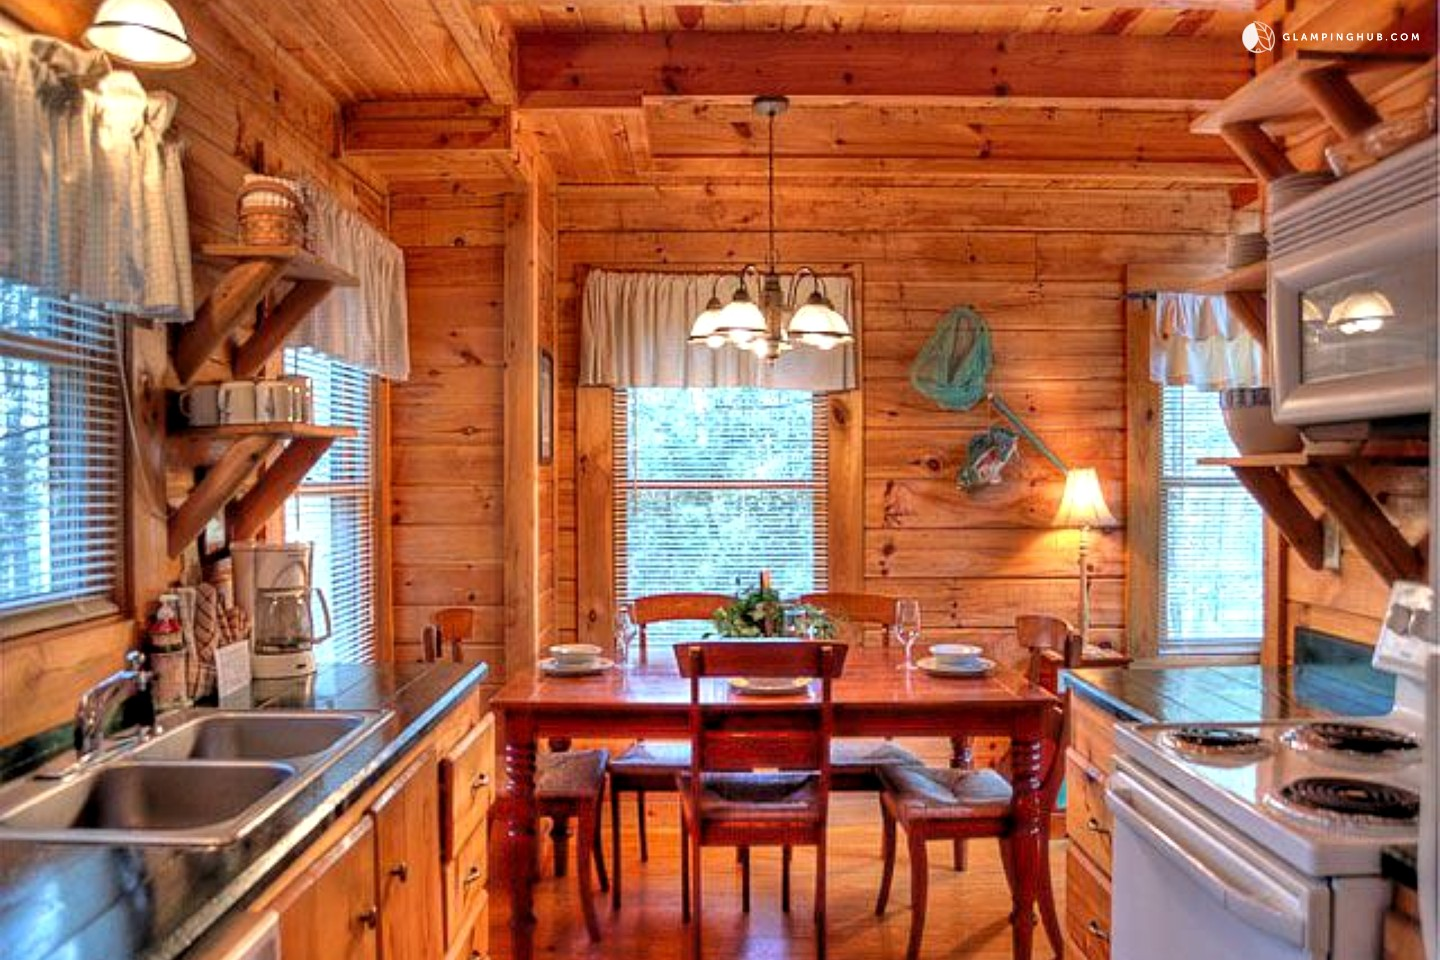 Log cabin rental near asheville for Asheville area cabin rentals